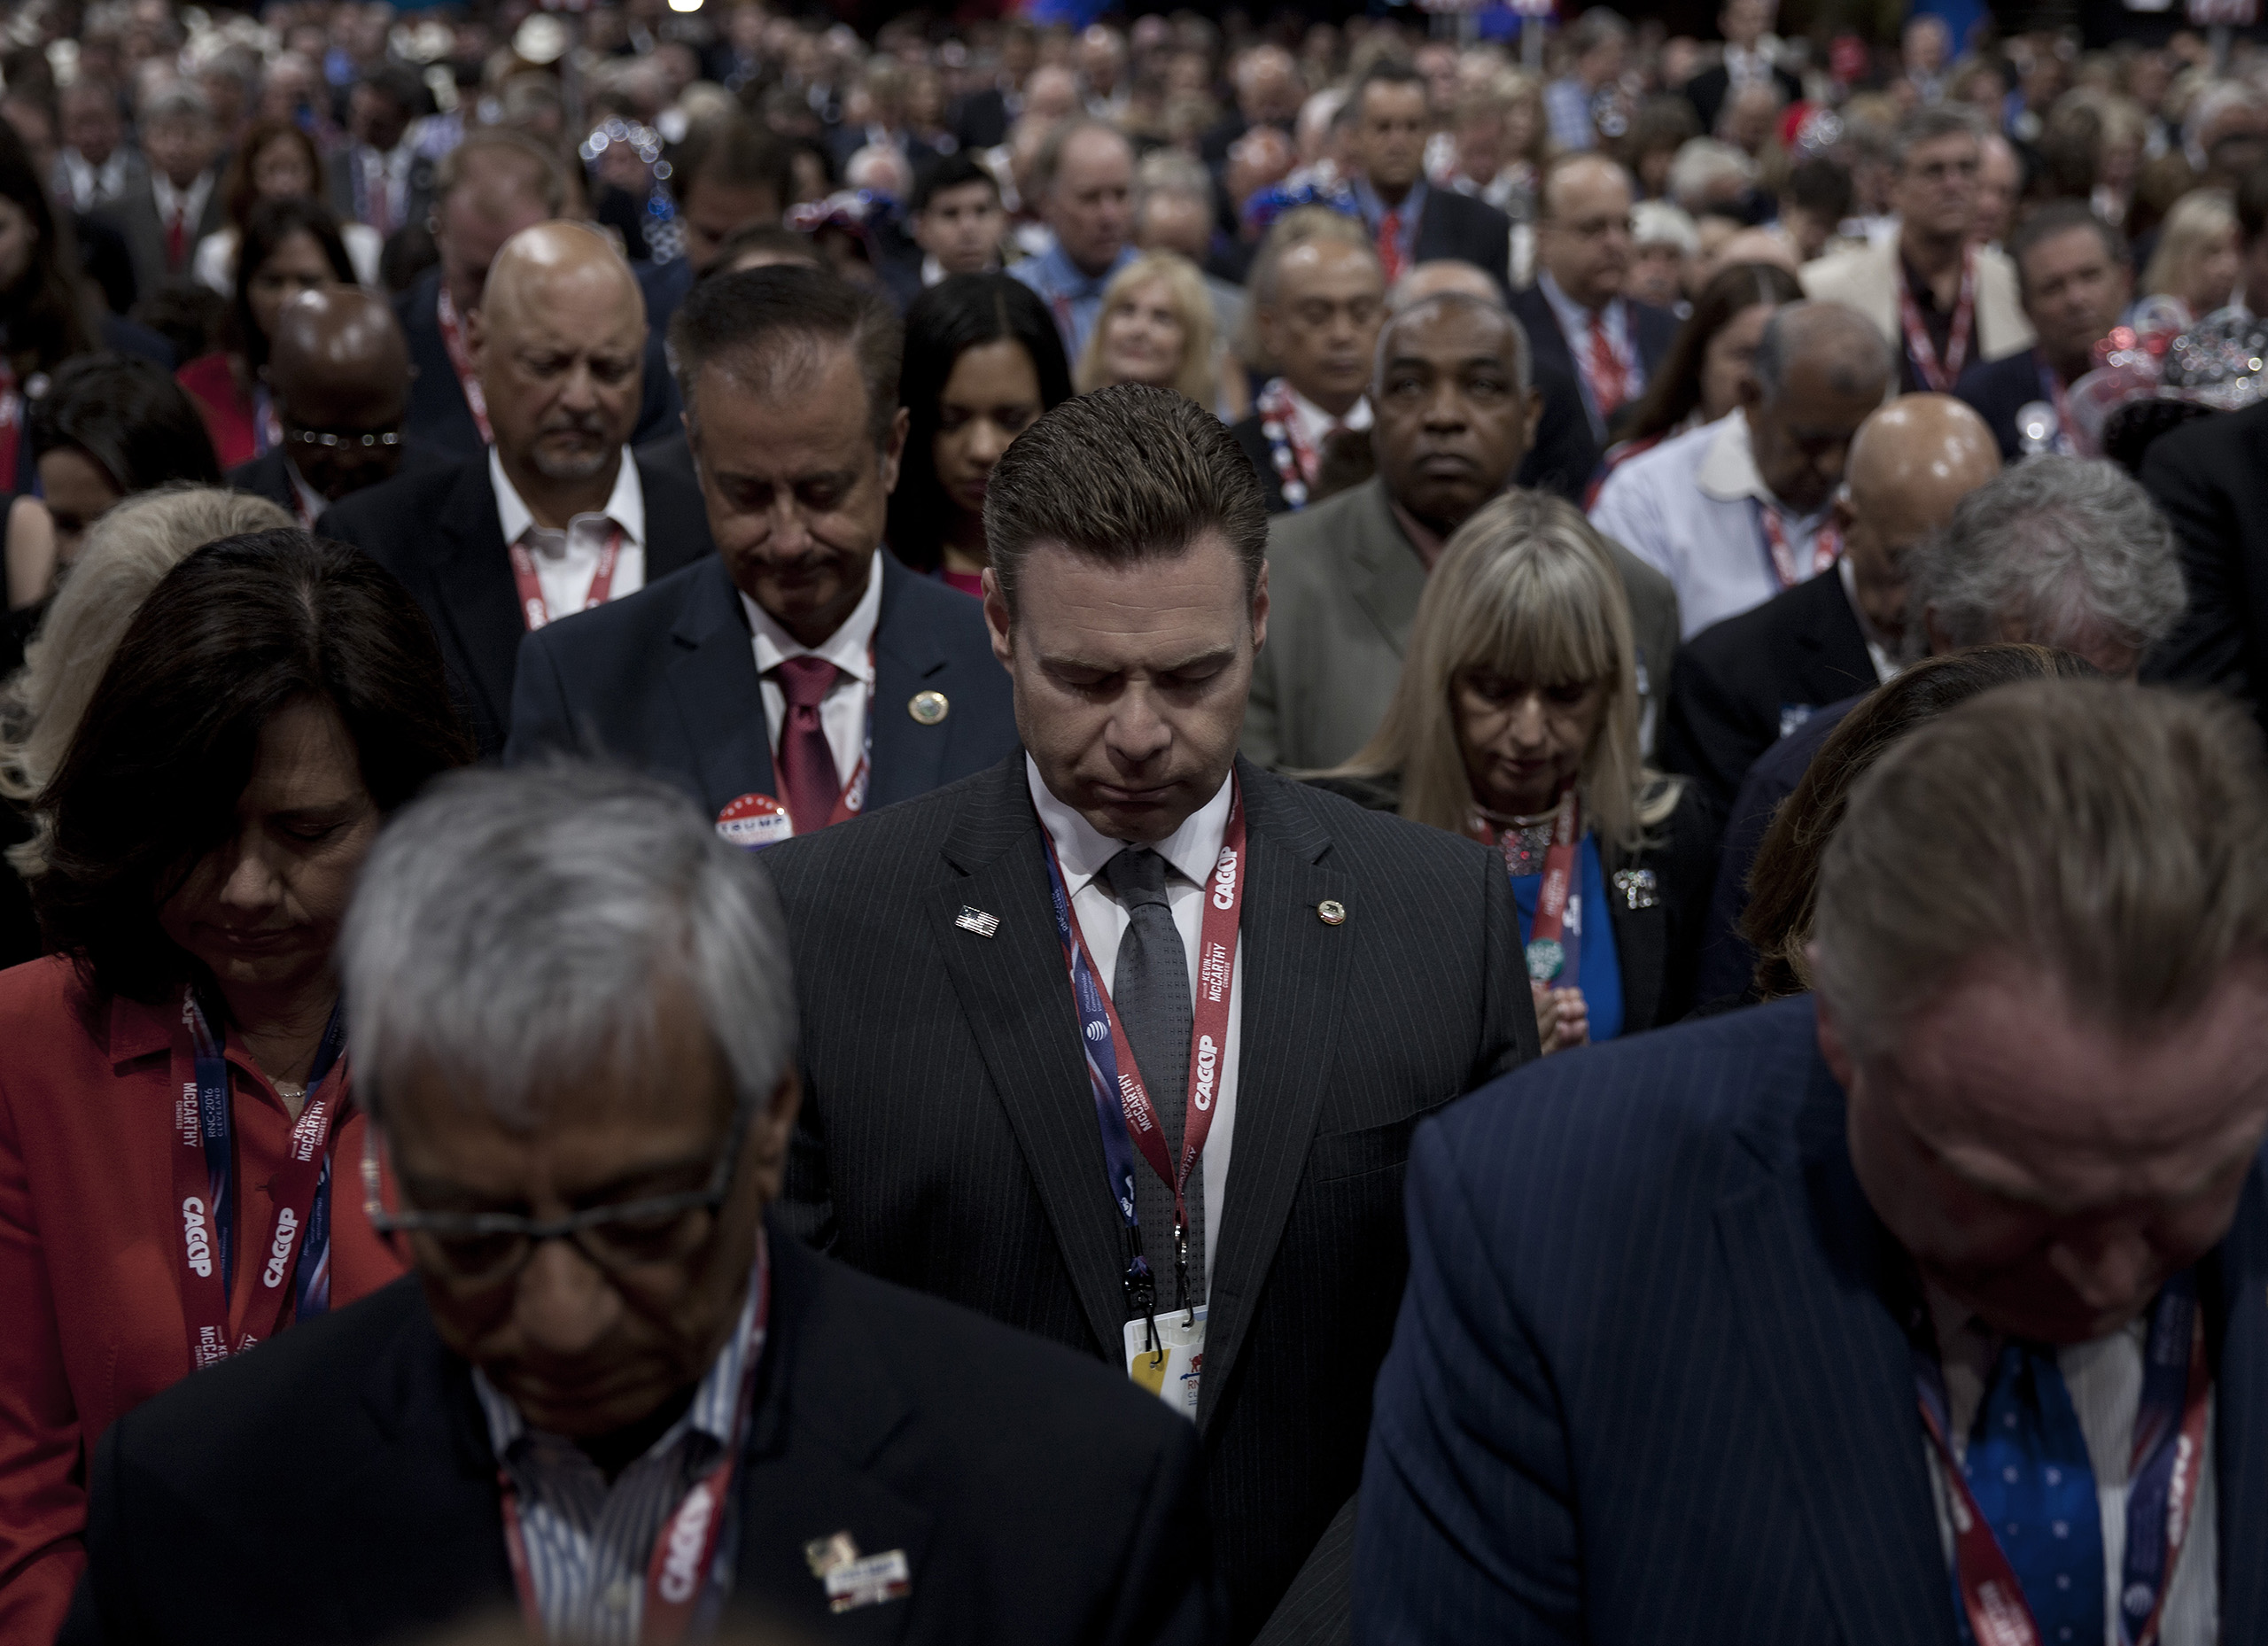 A moment of prayer Republican National Convention on July 21, 2016 at the Quicken Loans Arena in Cleveland.